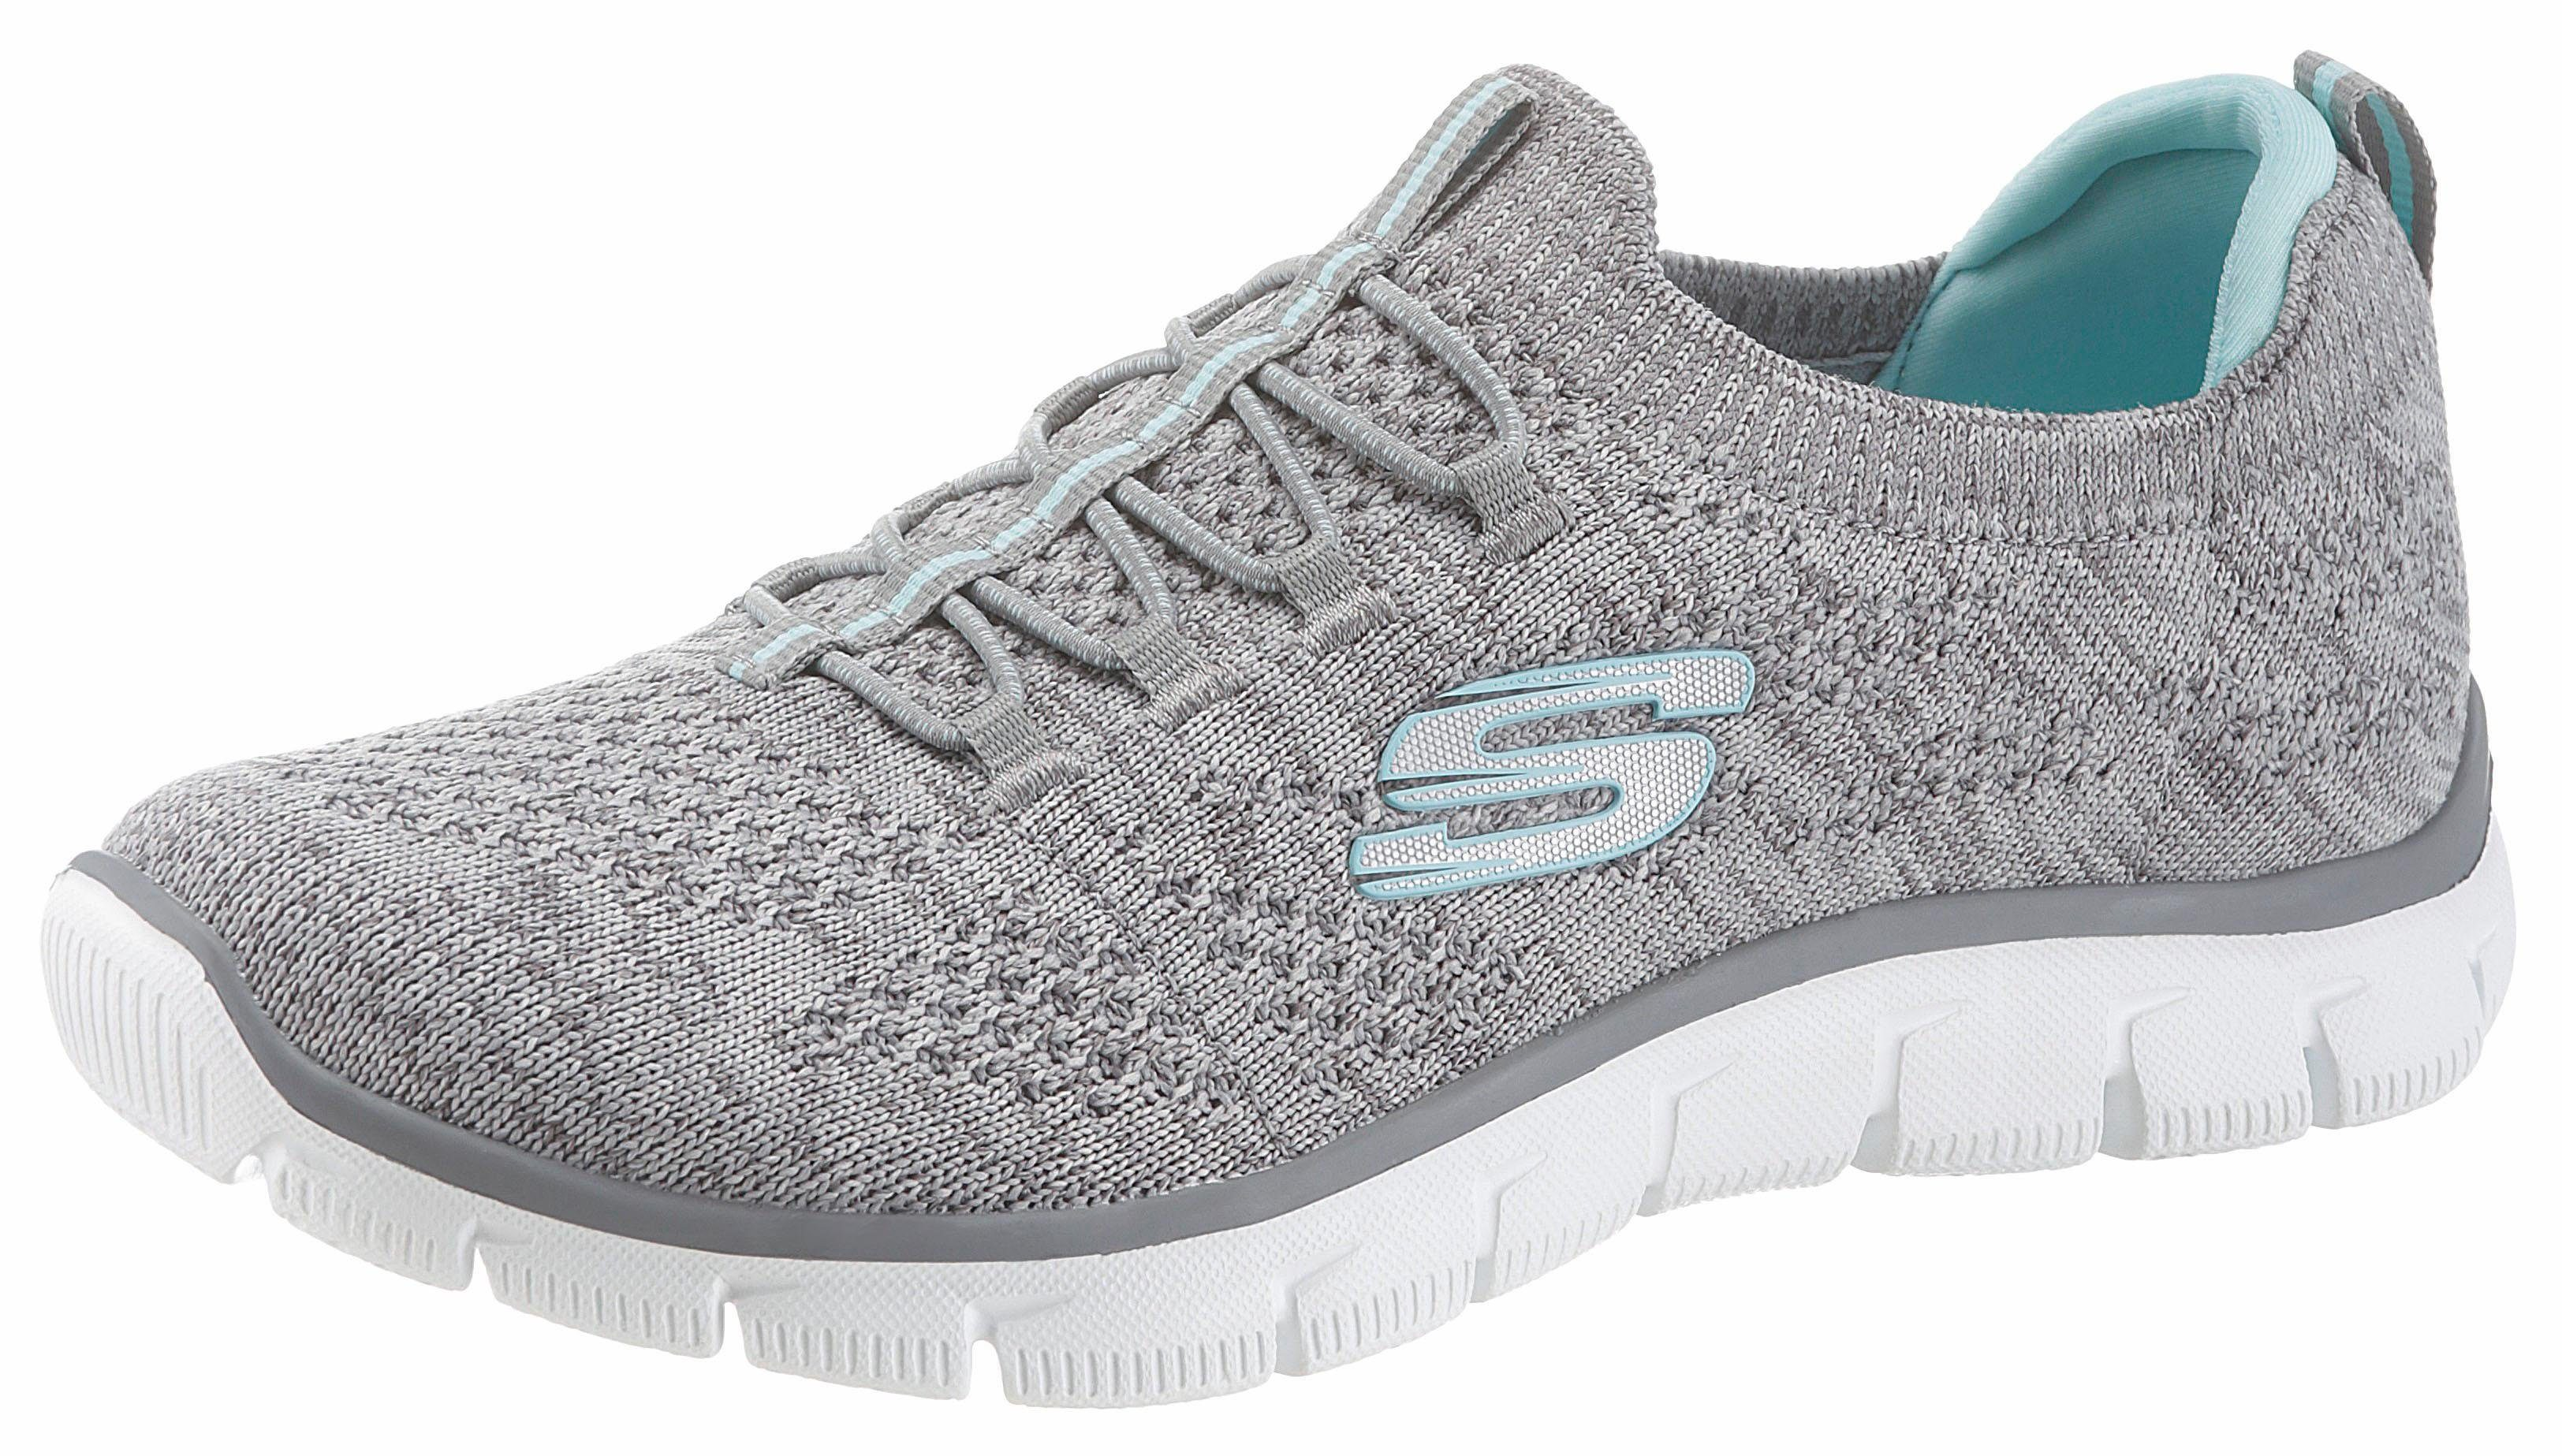 Skechers Empire - Sharp Thinking Slip-On Sneaker, mit Skech-Knit online kaufen  grau-hellblau